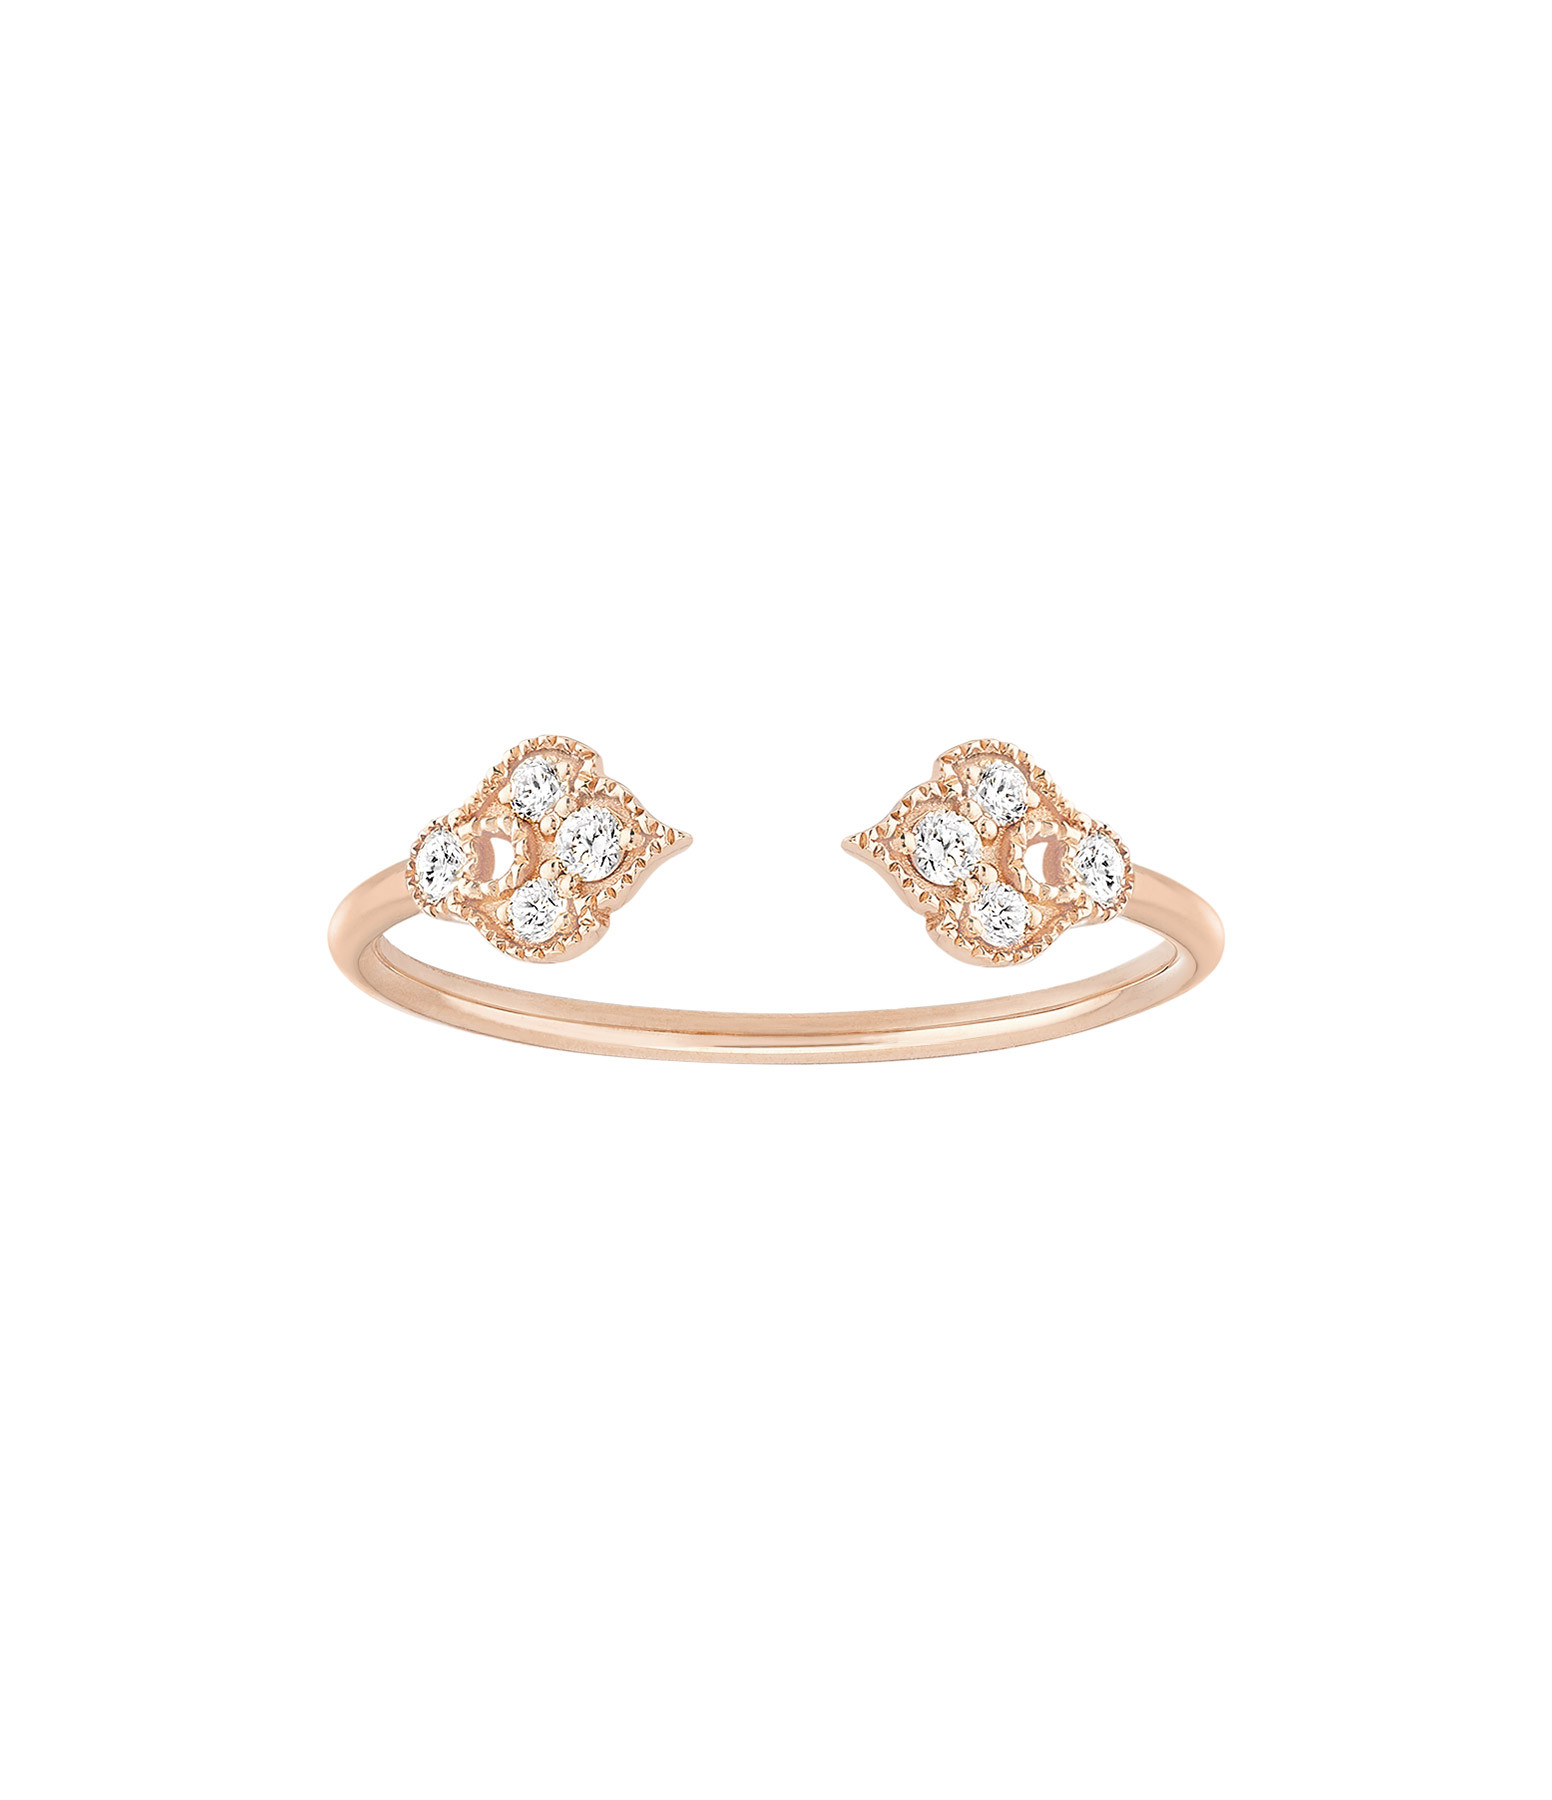 STONE PARIS - Bague Sultane Or Diamants